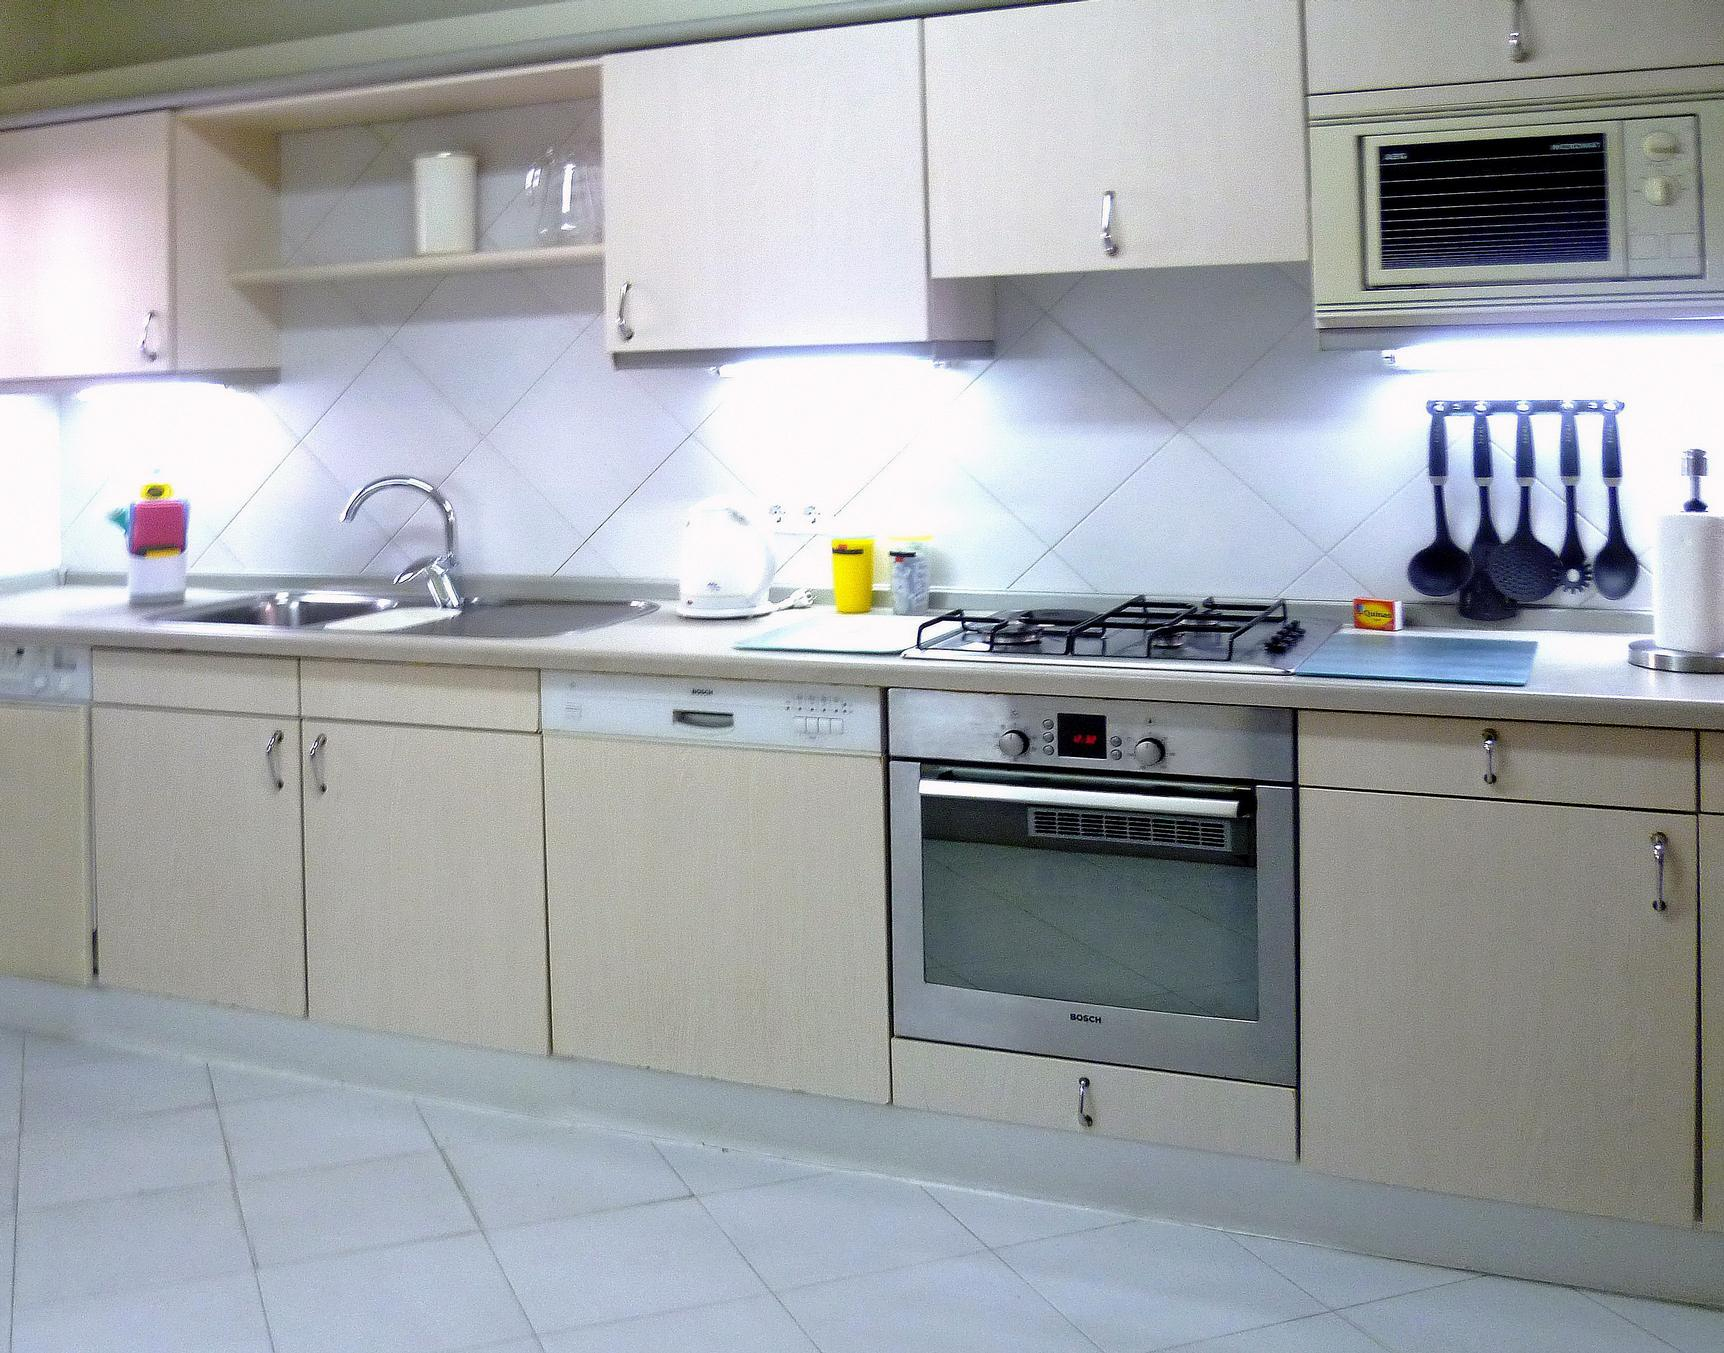 features fridge-freezer, dishwasher, washing machine, oven and hob ...